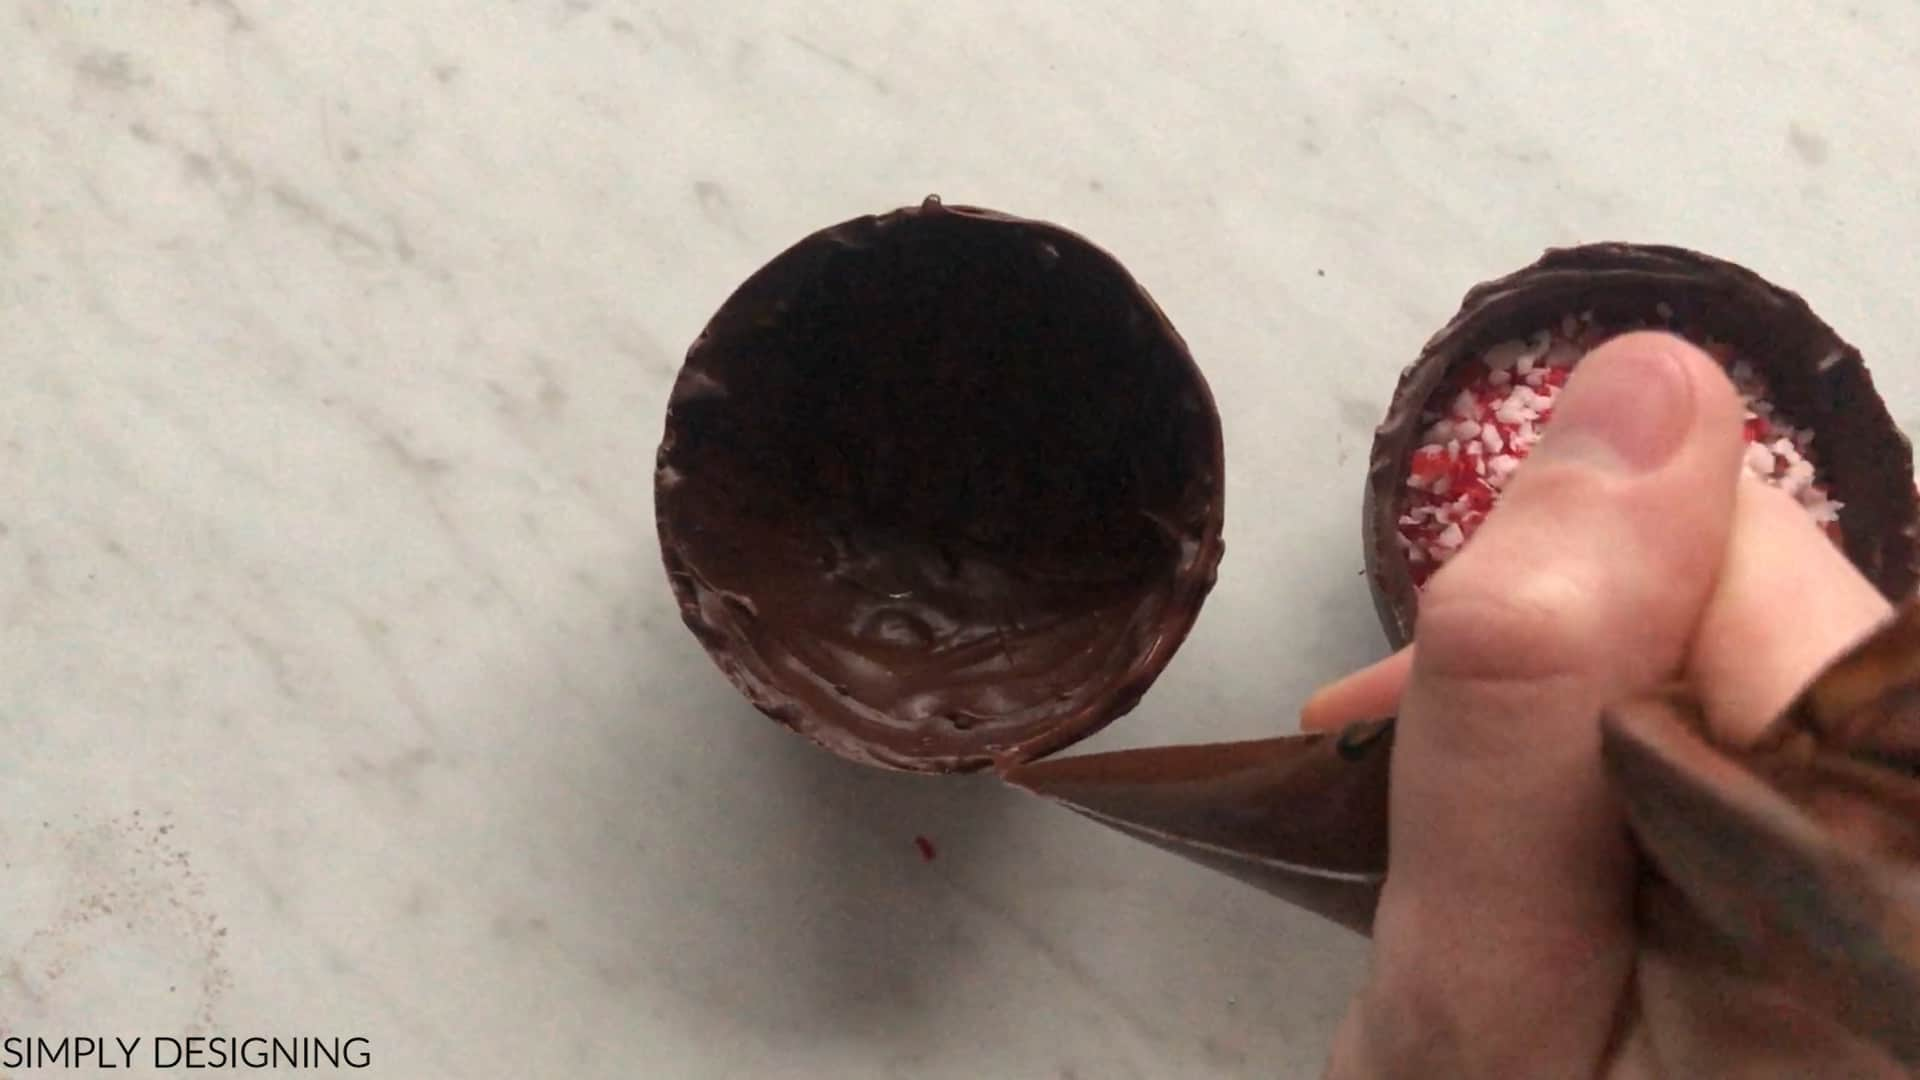 use melted chocolate to attach chocolate bomb